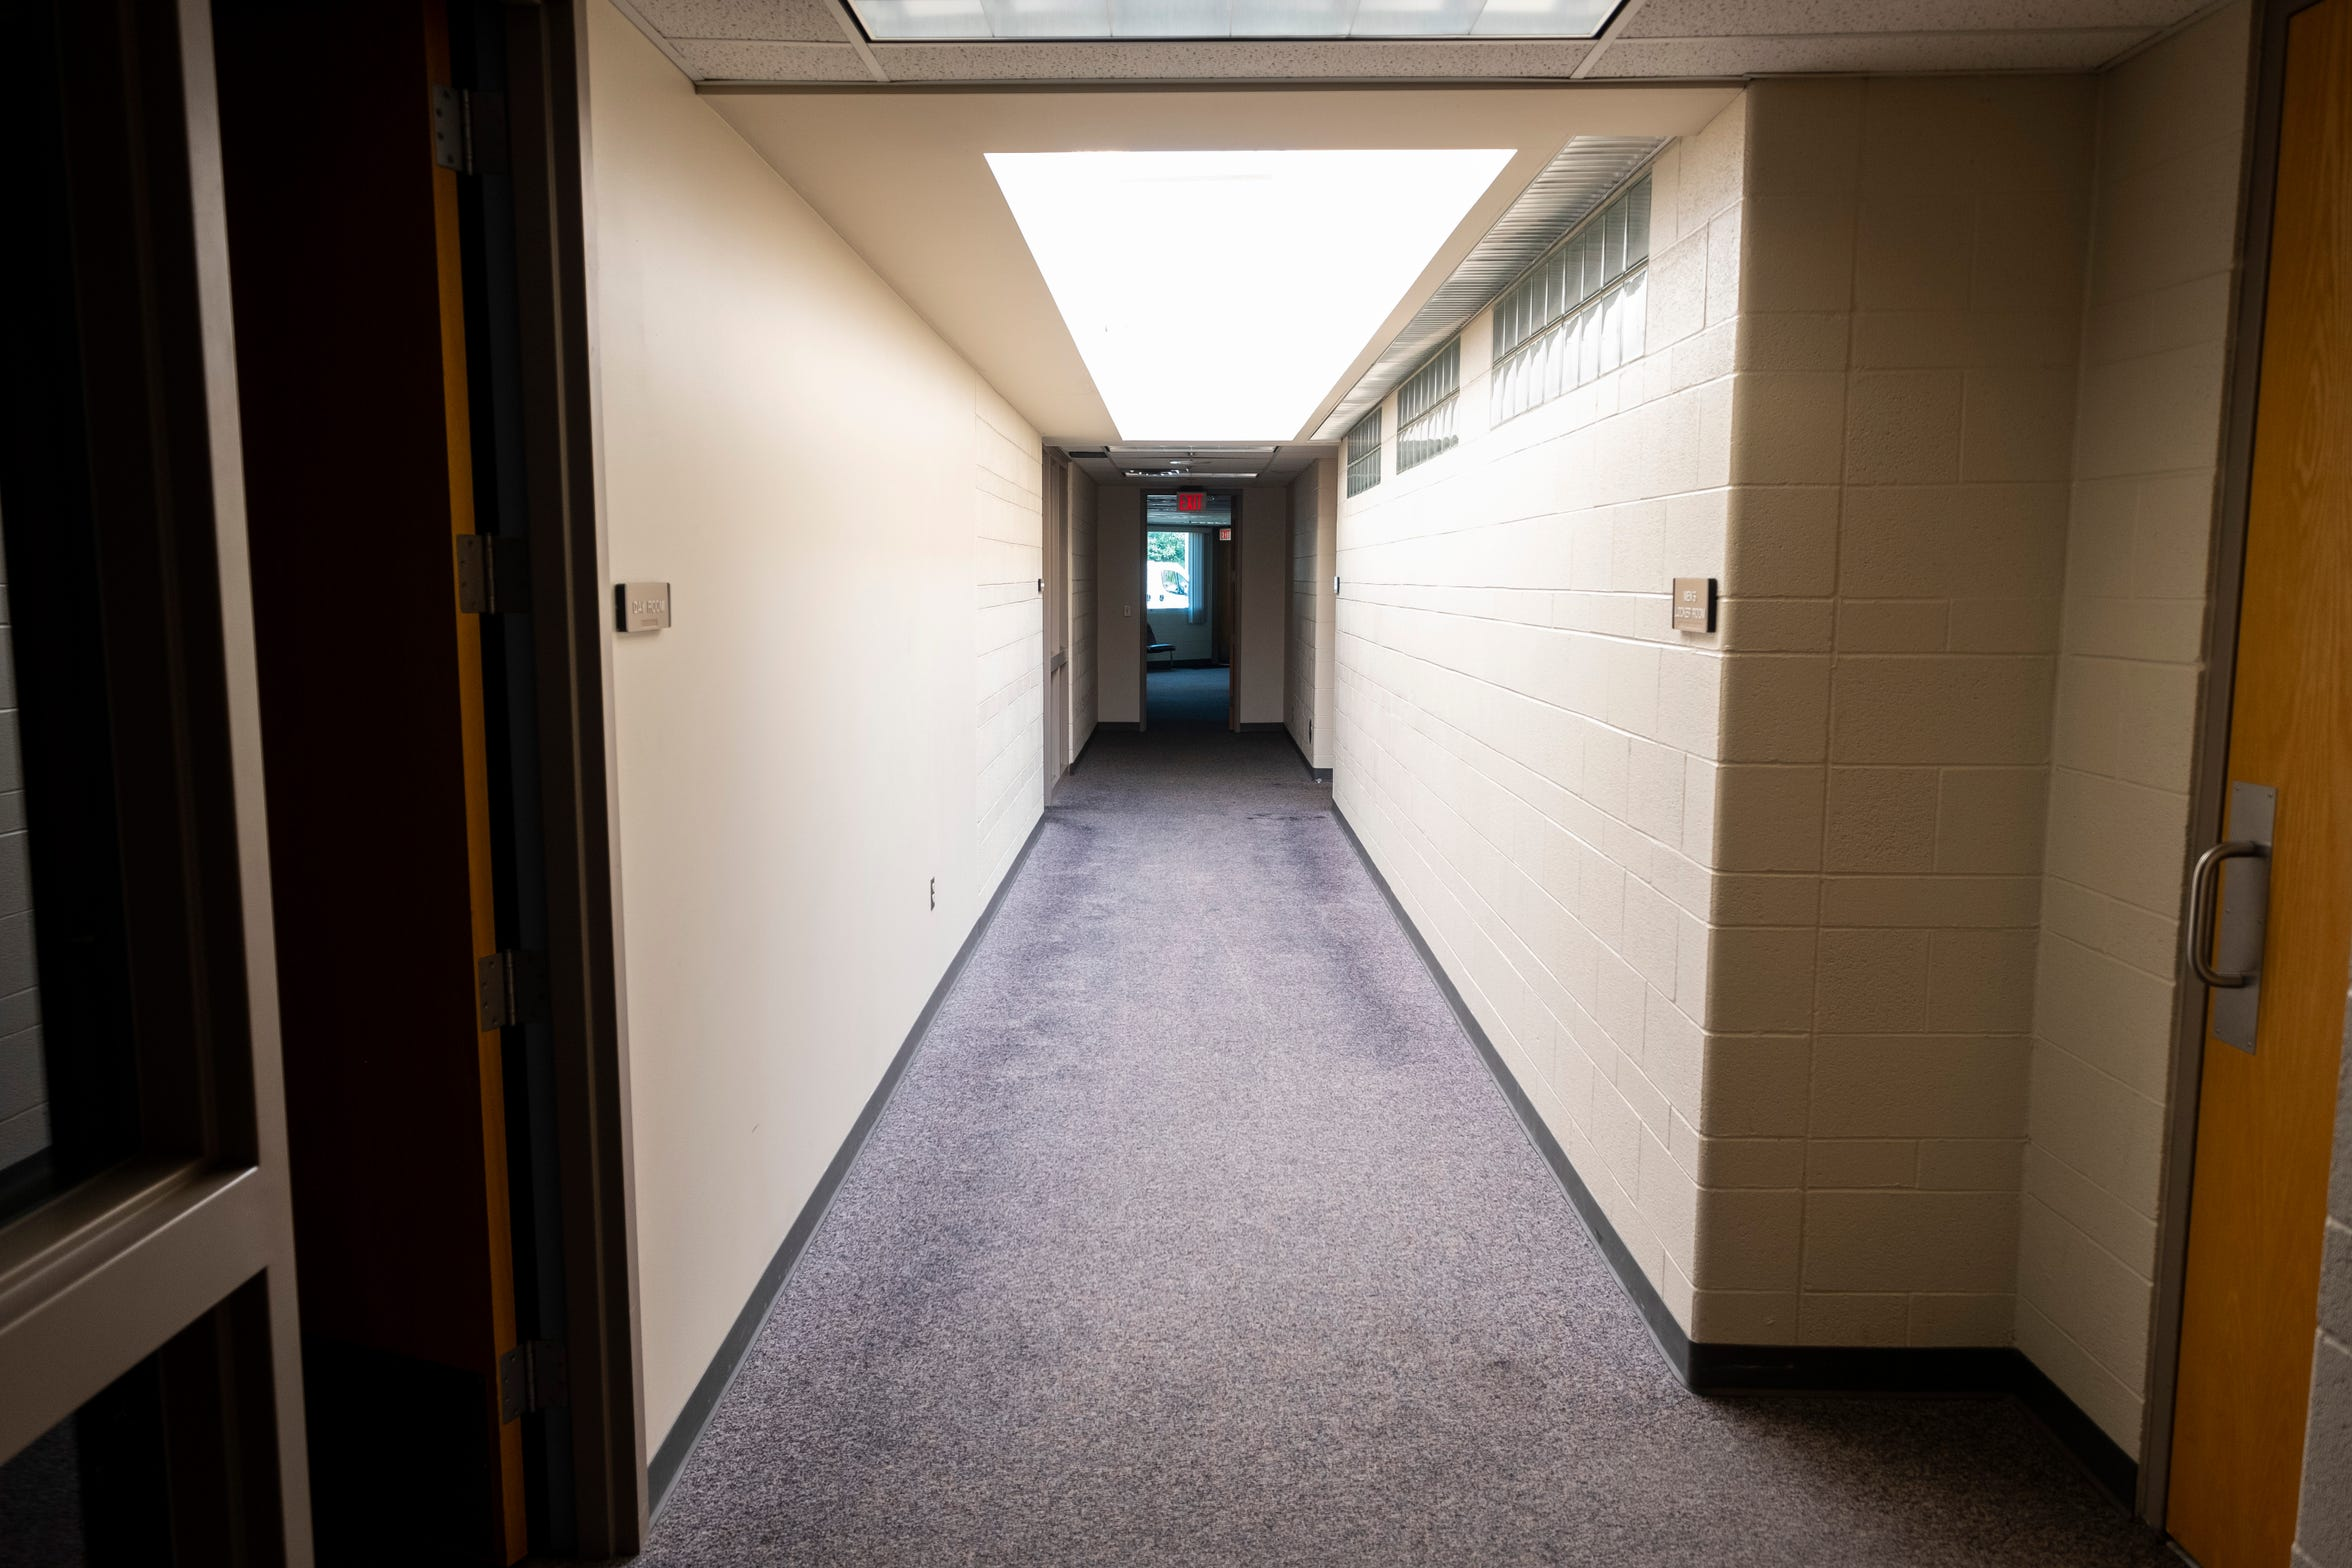 Carpeting in parts of the Marysville Public Safety building is planned to be replaced with polished concrete.